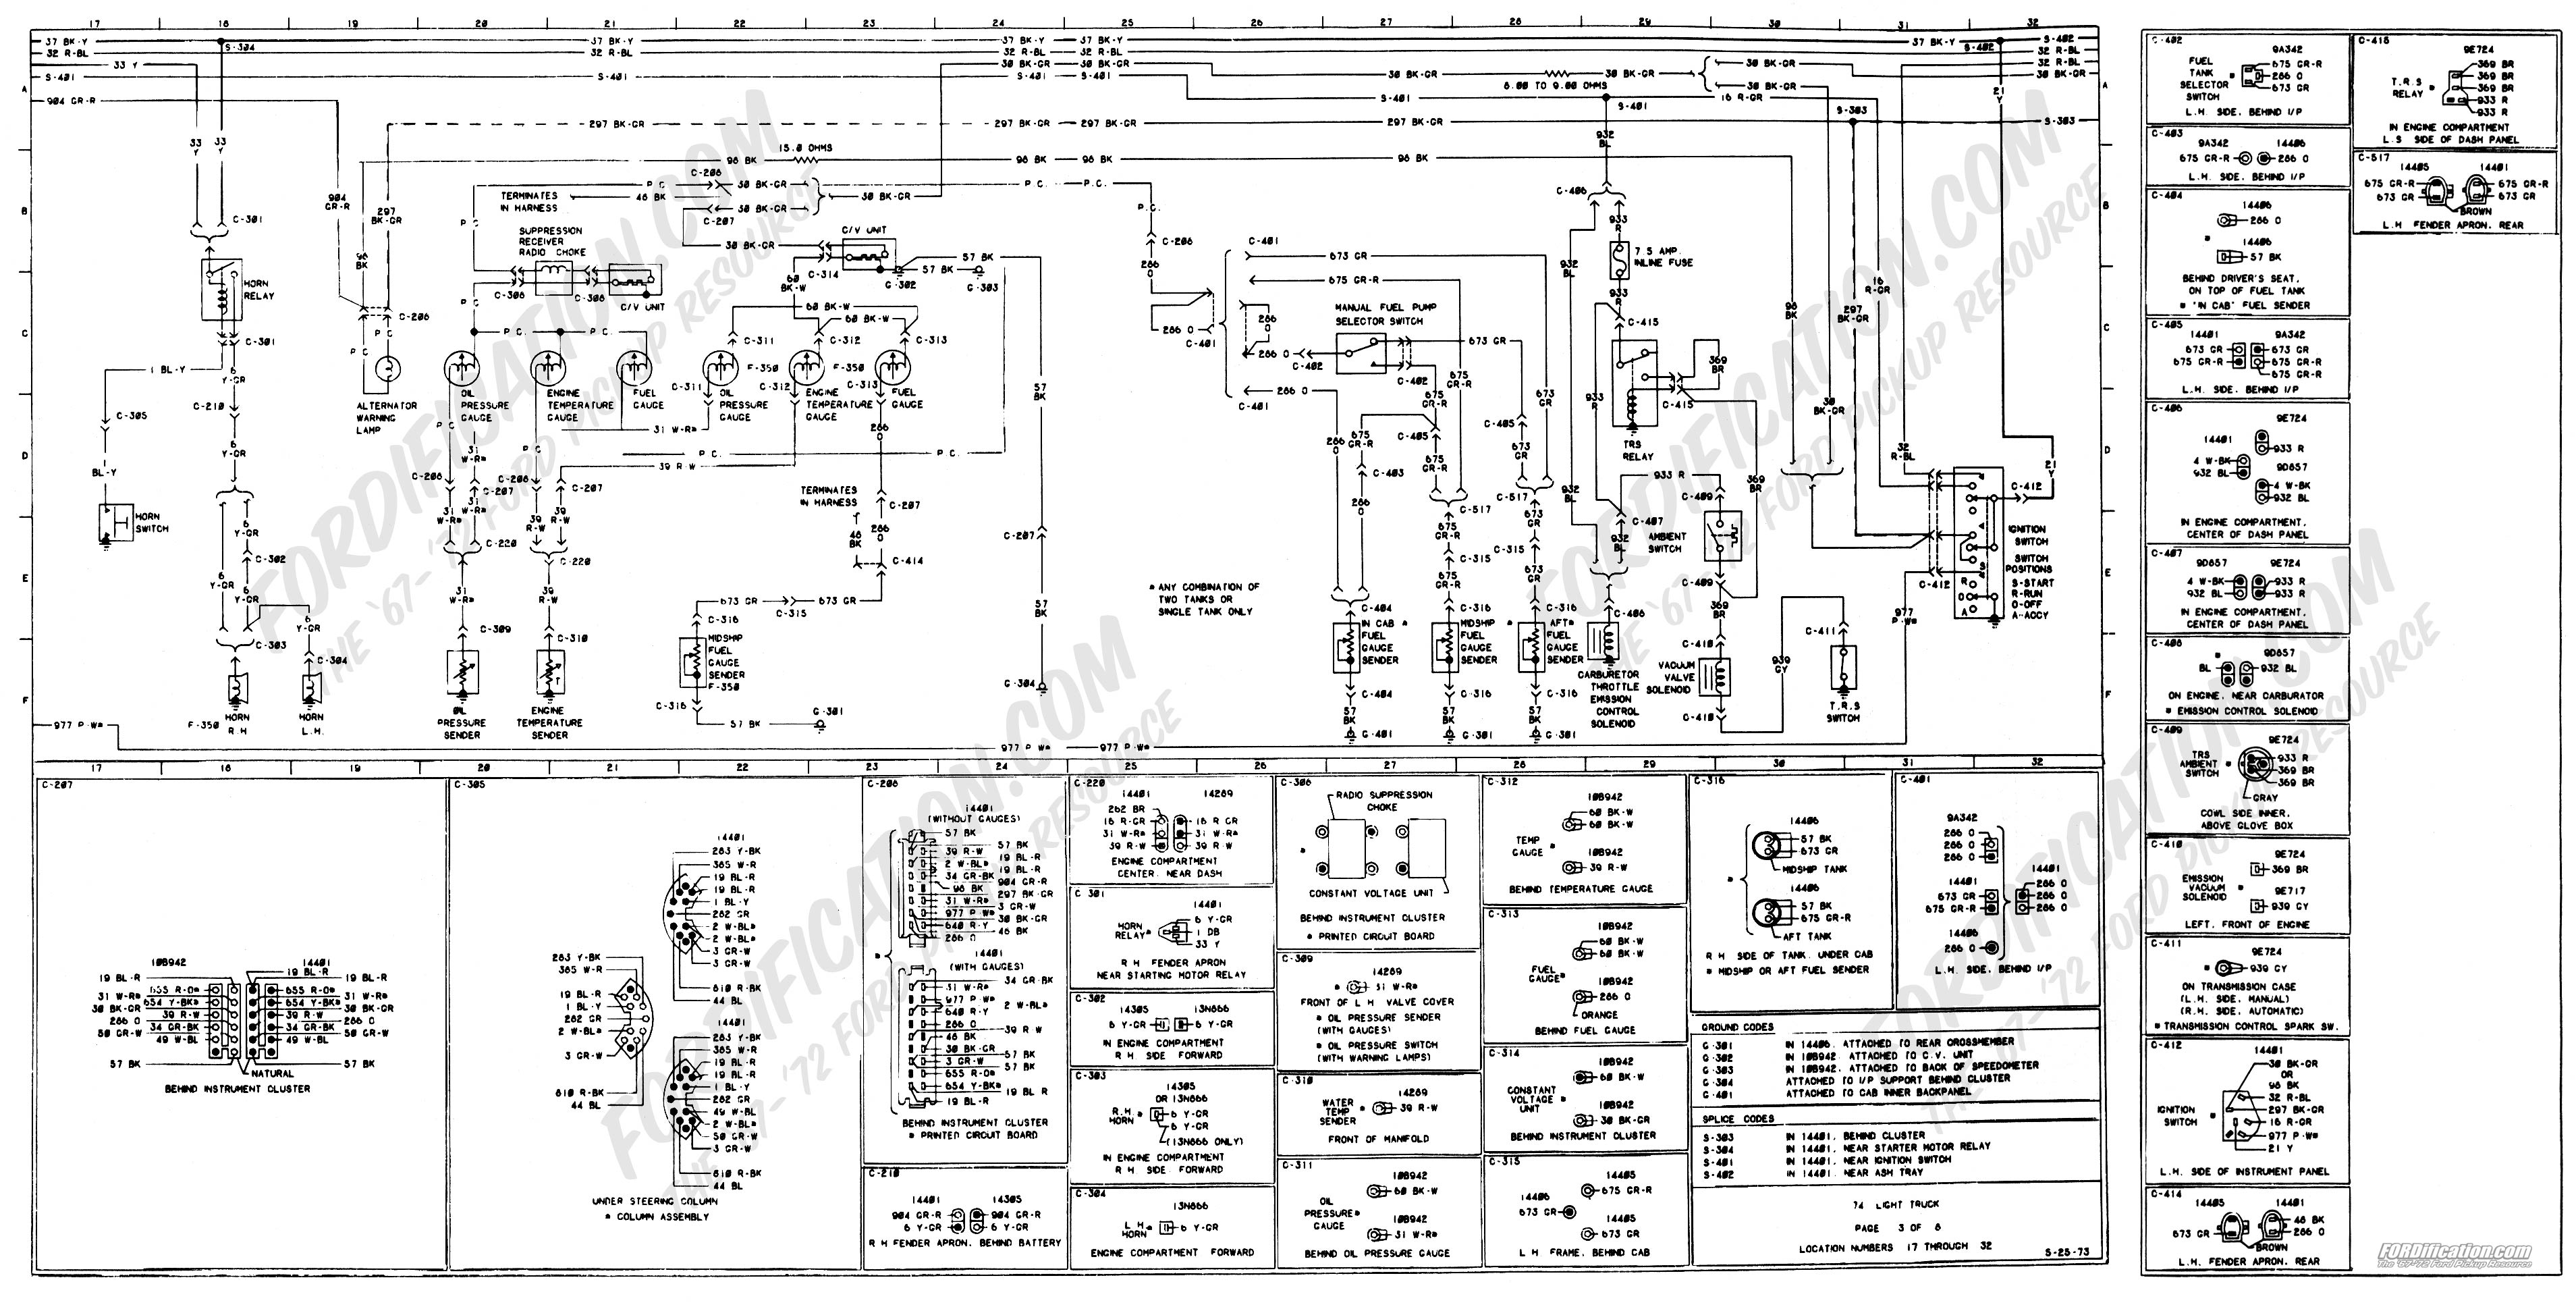 1978 Ford Wiring Schematic Diagrams F 350 Alternator Diagram 1973 1979 Truck Schematics Fordification Net